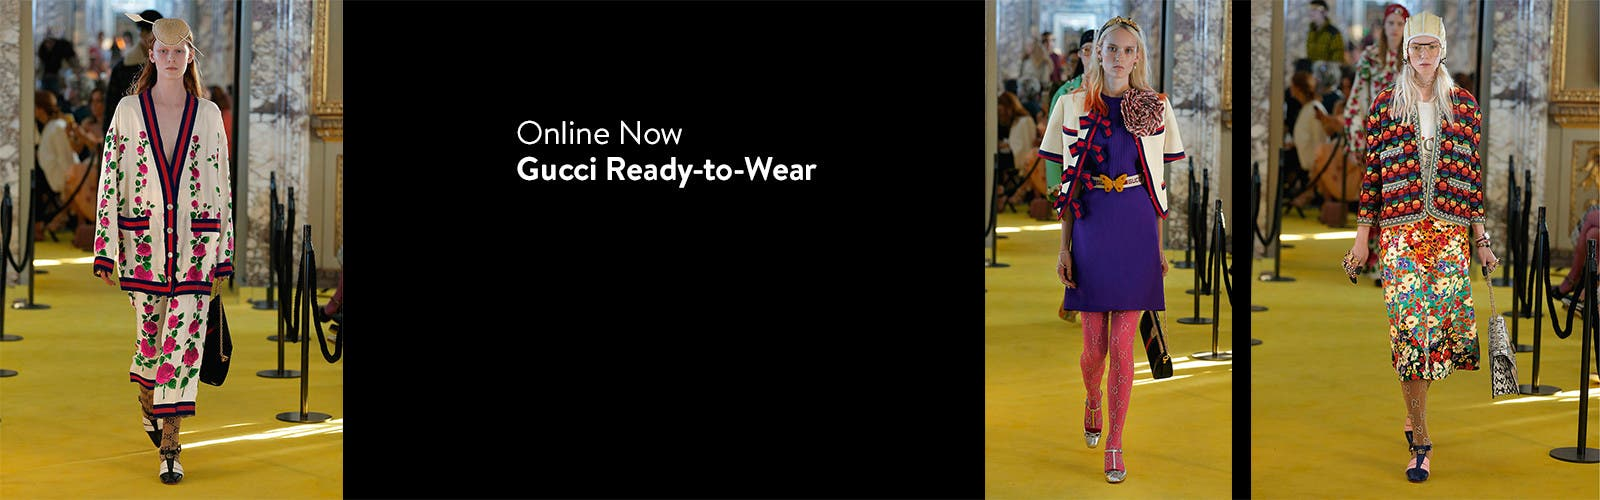 Online now: Gucci ready-to-wear; women's designer clothing.